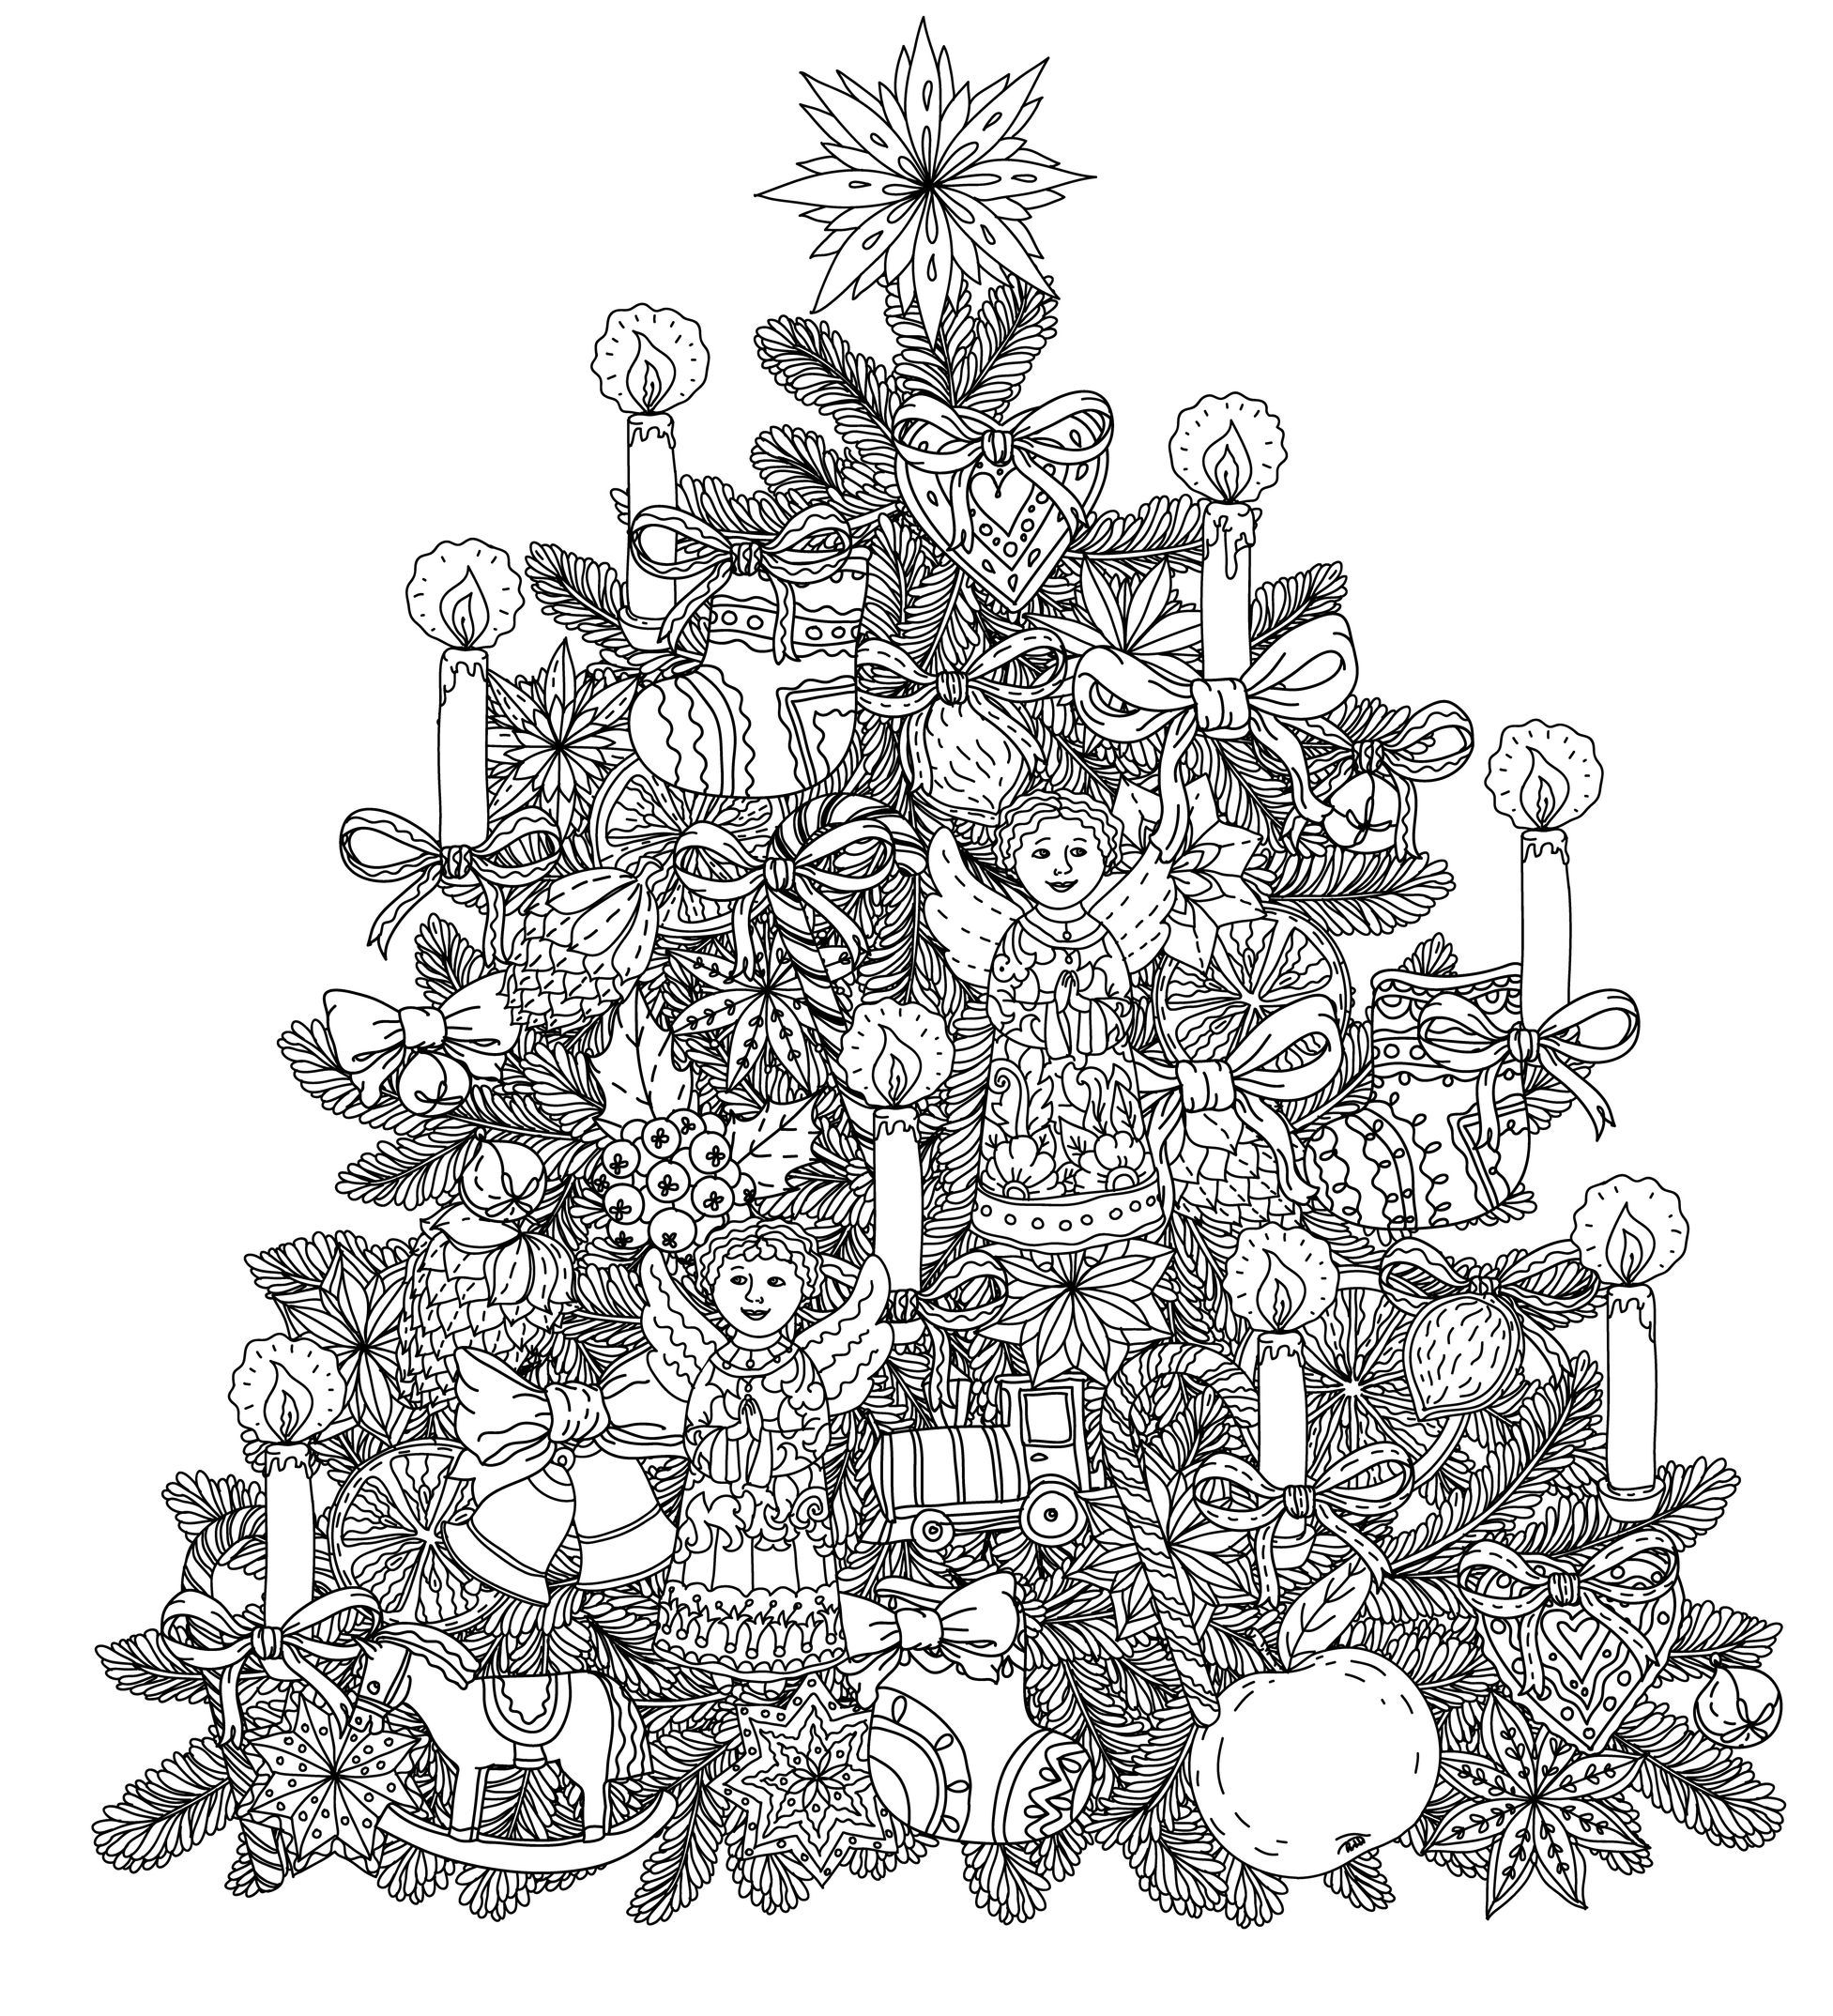 Christmas Coloring Pages Christmas Tree Decorations Christmas Tree Coloring Page Printable Christmas Coloring Pages Tree Coloring Page